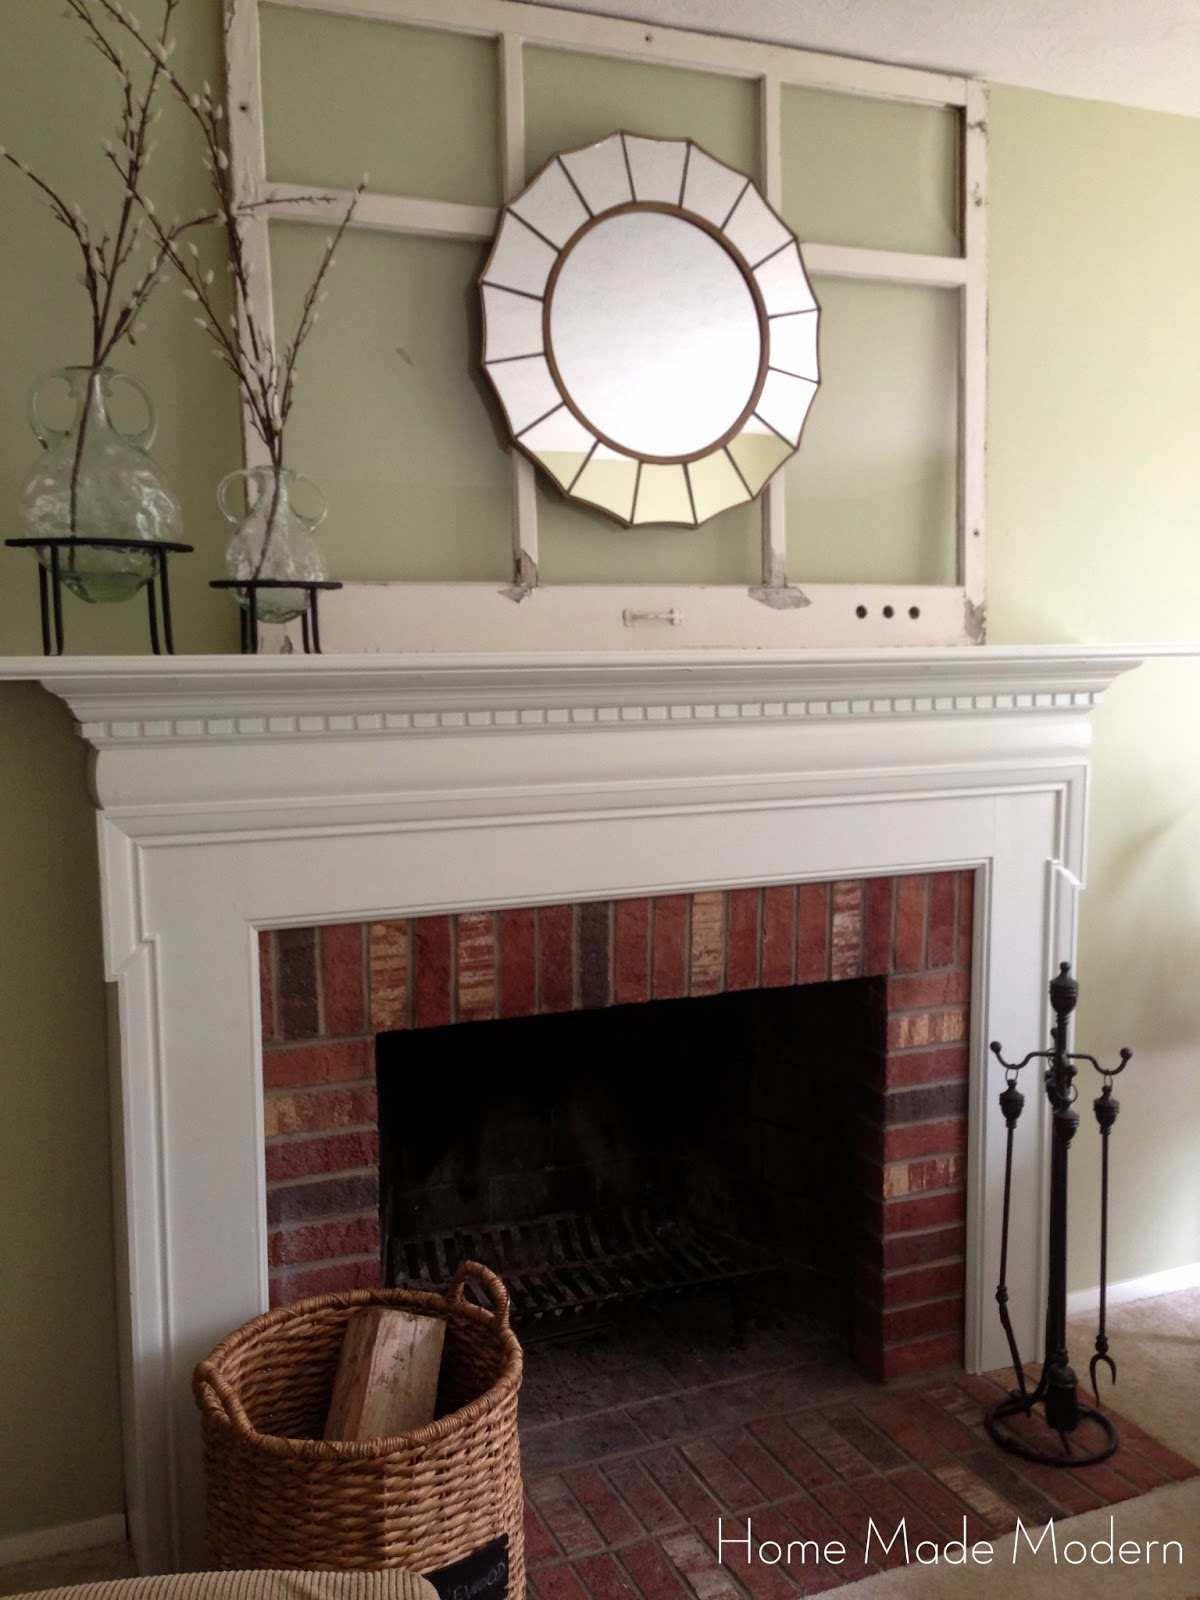 Home Made Modern: Painted Fireplace Mantel (